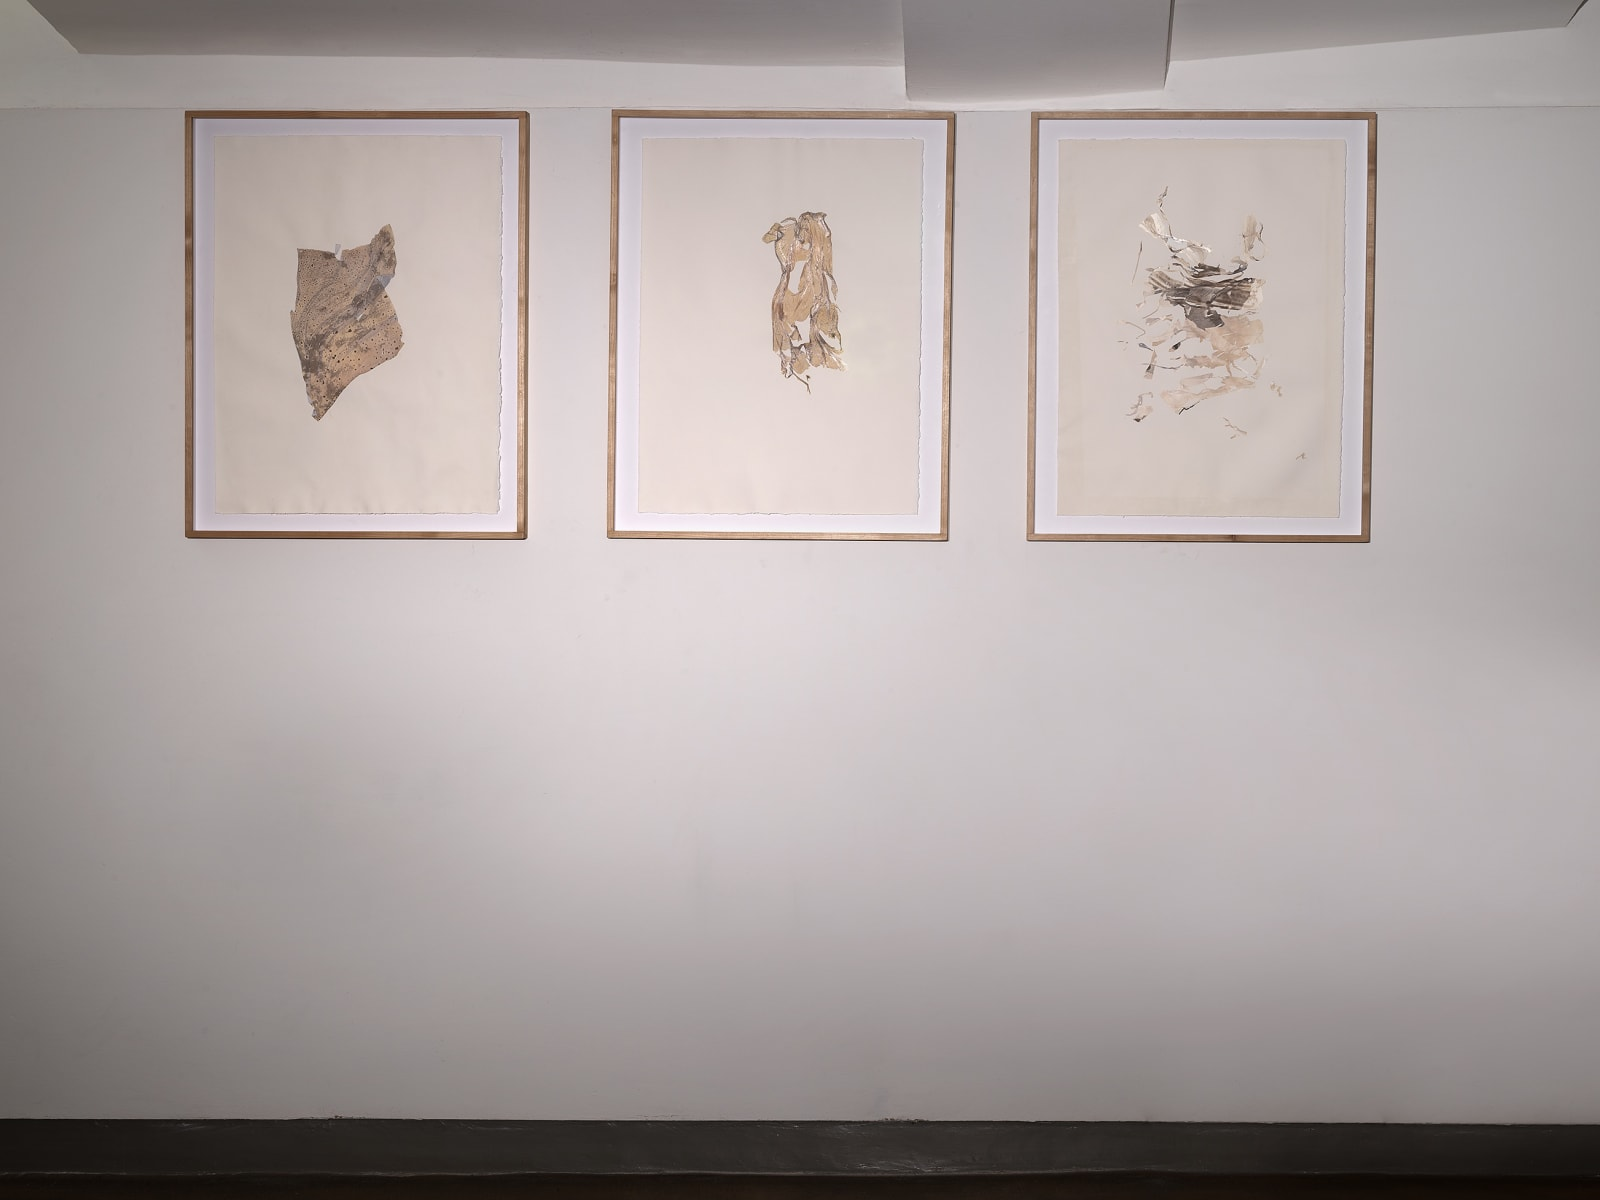 Beatrice Pediconi Anamnesis series, 2018-2019 Mixed media on watercolor paper Cm 66 x 50, cm 75 x 59 x 4 framed (each)